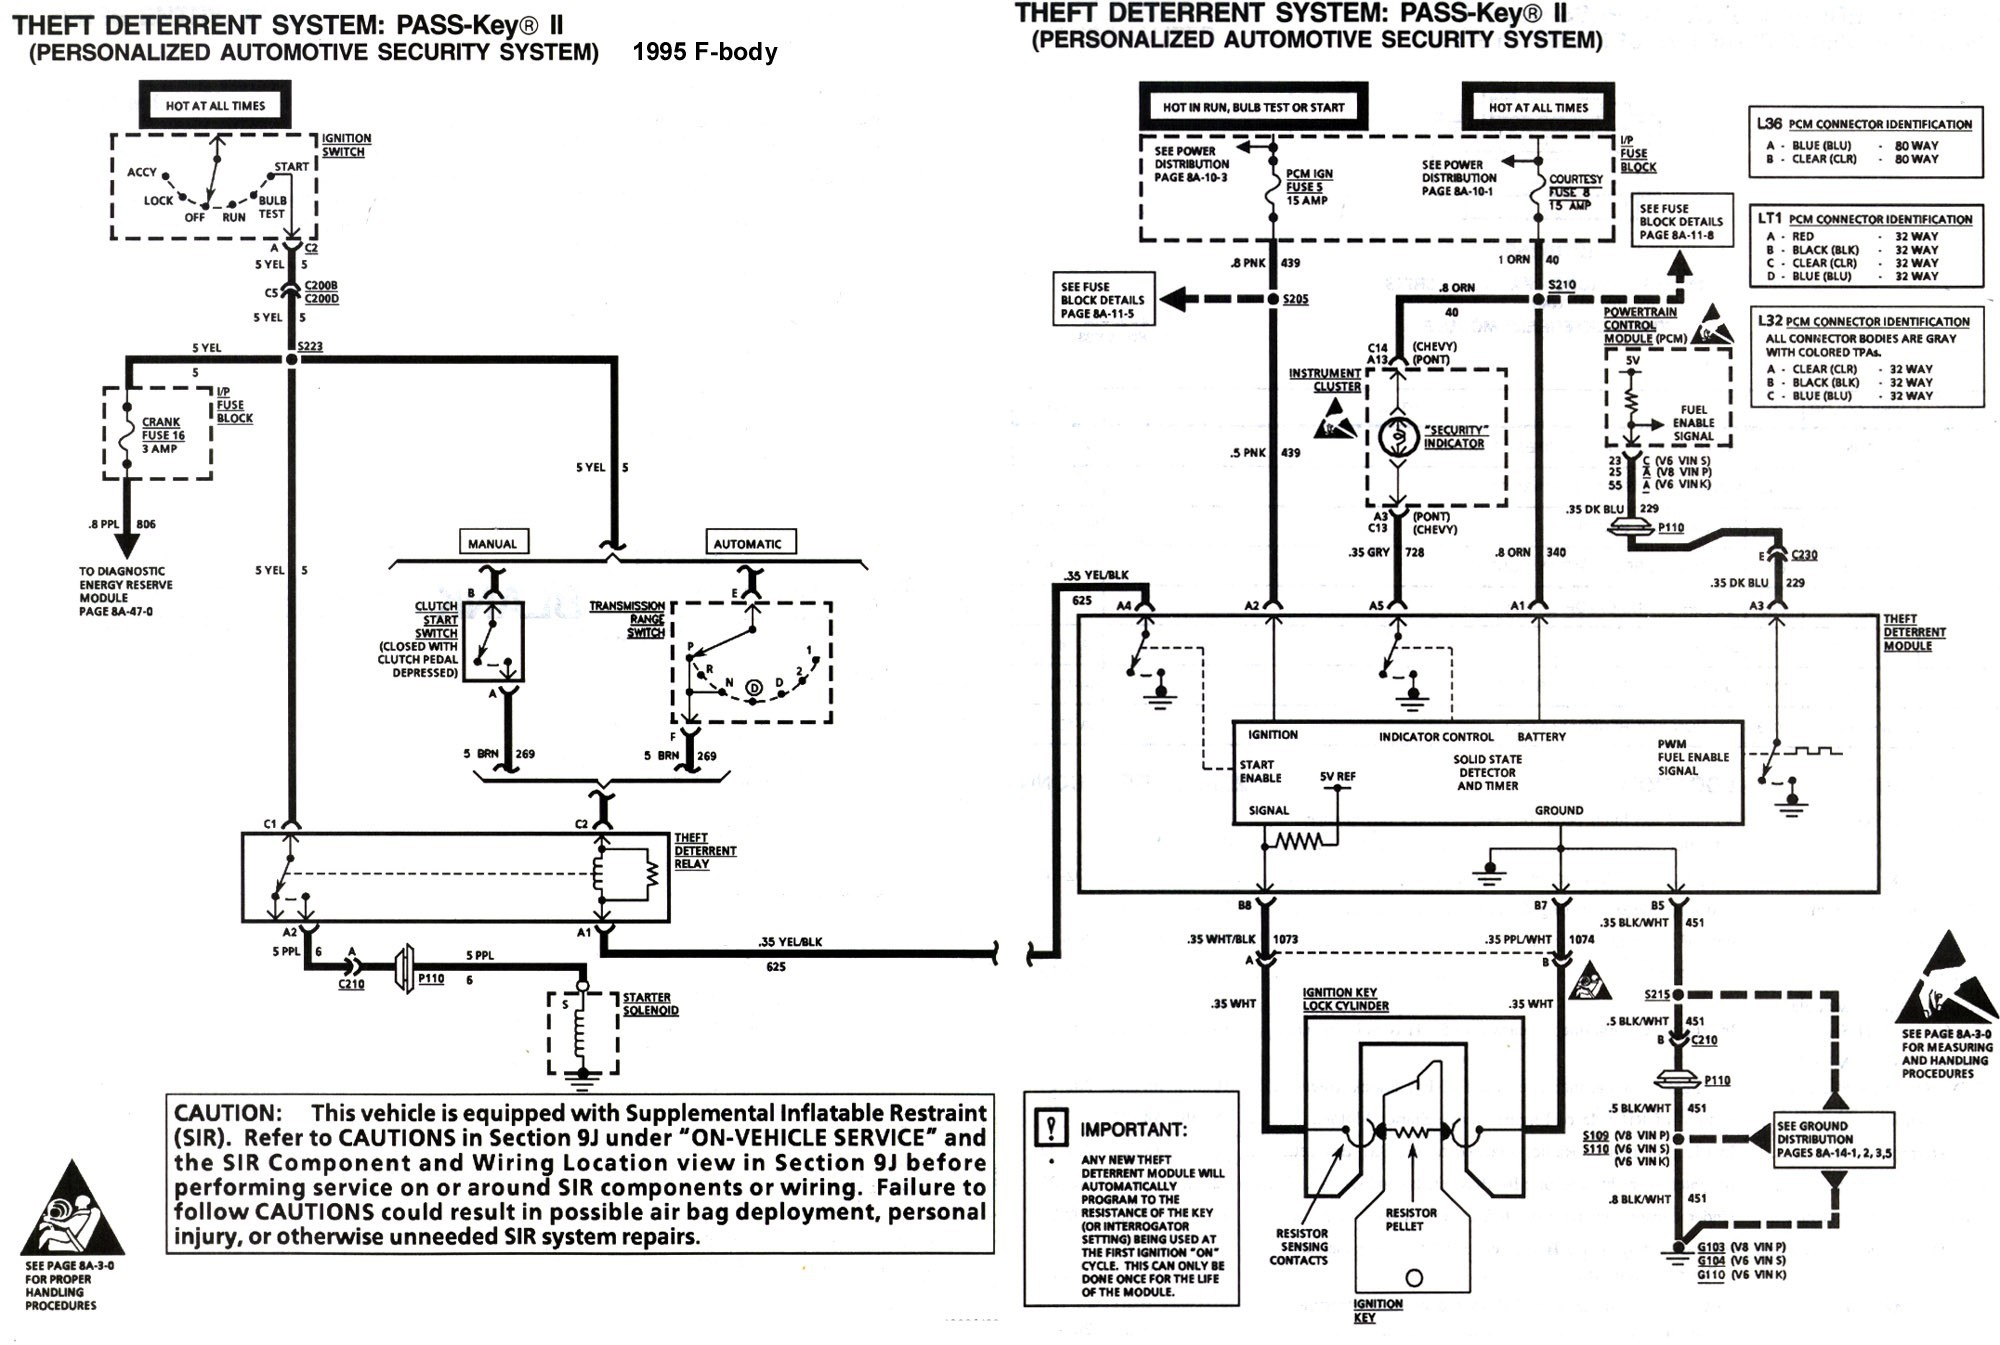 Gm 4 3l Vortec Engine Diagram | Online Wiring Diagram  Vortec Engine Diagram on gm serpentine belt diagram, chevrolet 4.2 l6 engine diagram, colorado 3 5 vortex 3500 engine diagram, 3.8 liter gm engine diagram, car engine diagram, chevy 4.2l engine diagram, gm quad 4 valve diagram, 4.3 v6 engine diagram, w12 engine animation diagram, 4.2 firing order diagram, 4300 vortec sensor diagram, ford 3.8 v6 engine diagram, gmc envoy engine diagram, 1997 318i engine diagram,